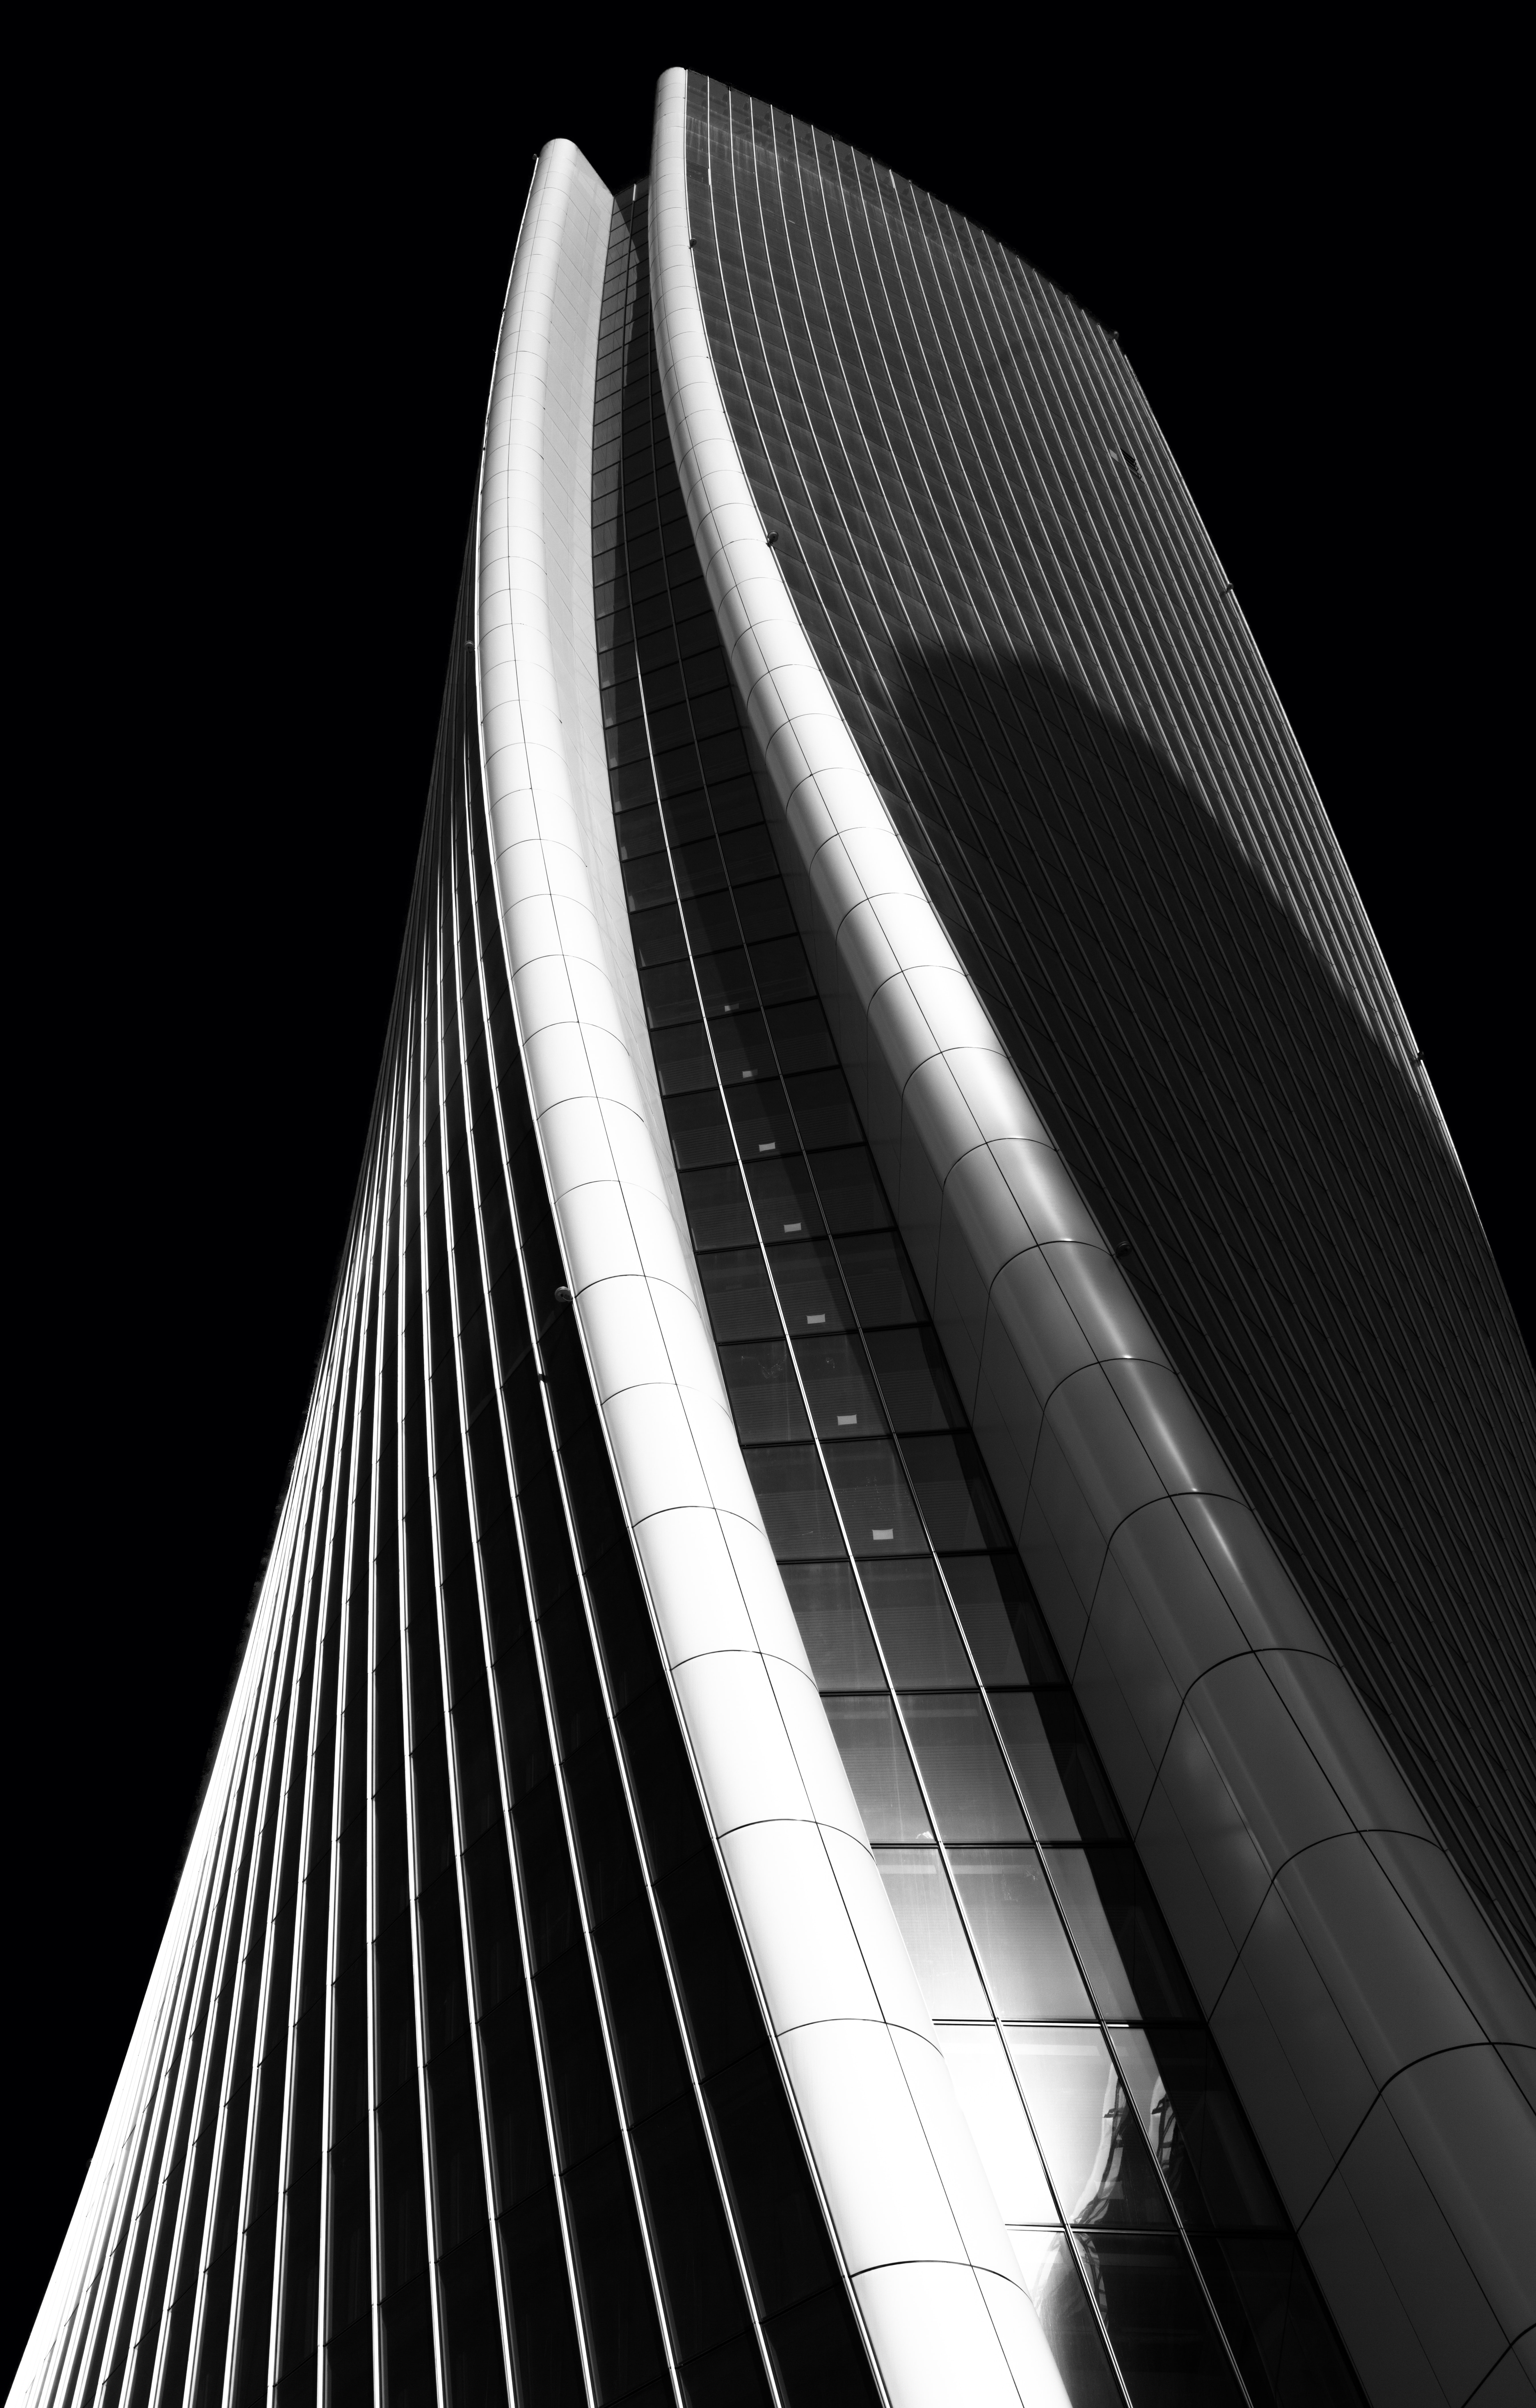 high-rise curtained wall building grayscale photography